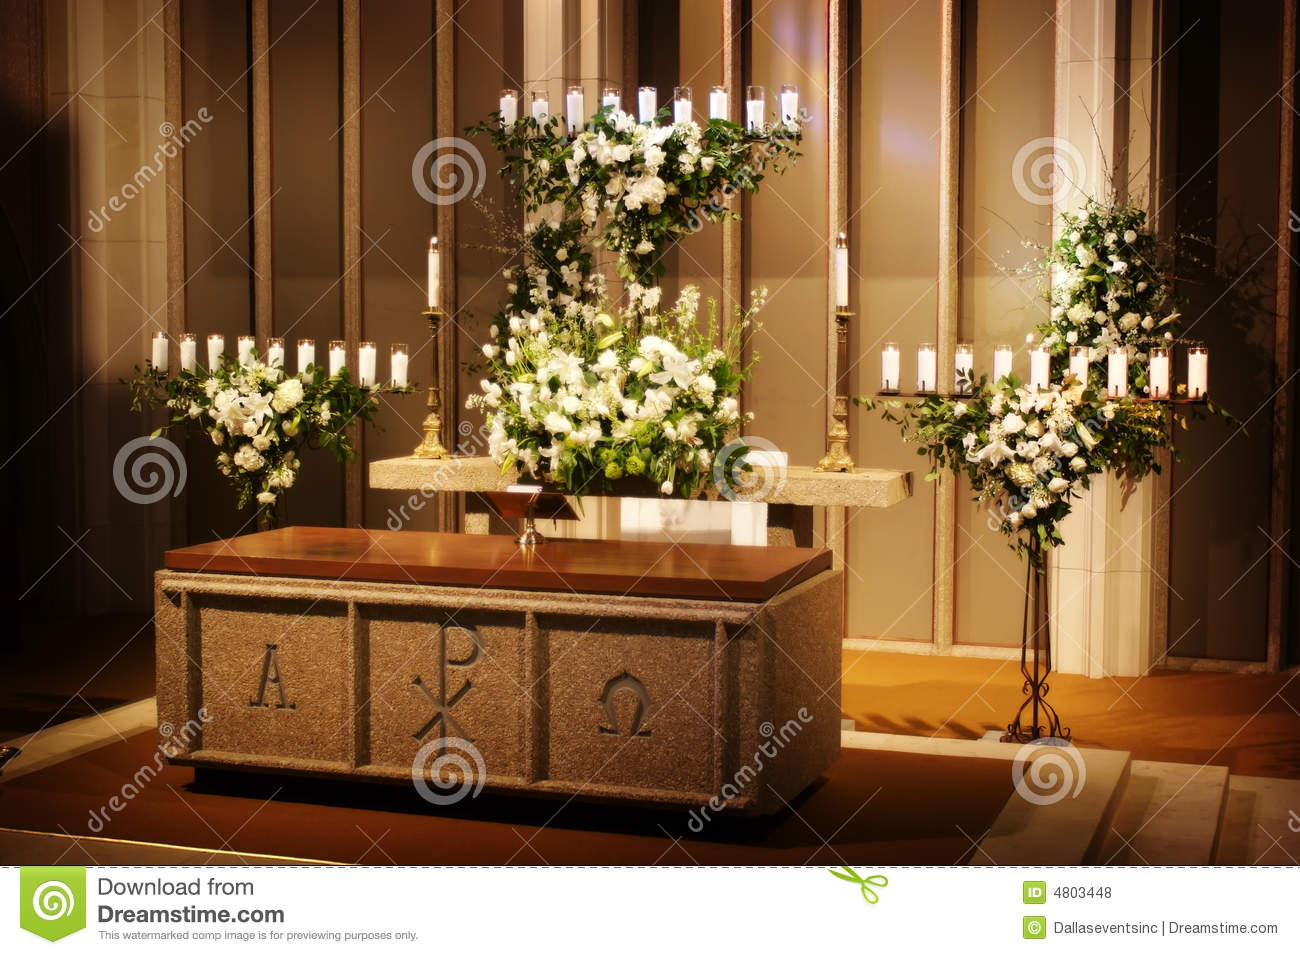 Wedding Flowers And Candles In A Church